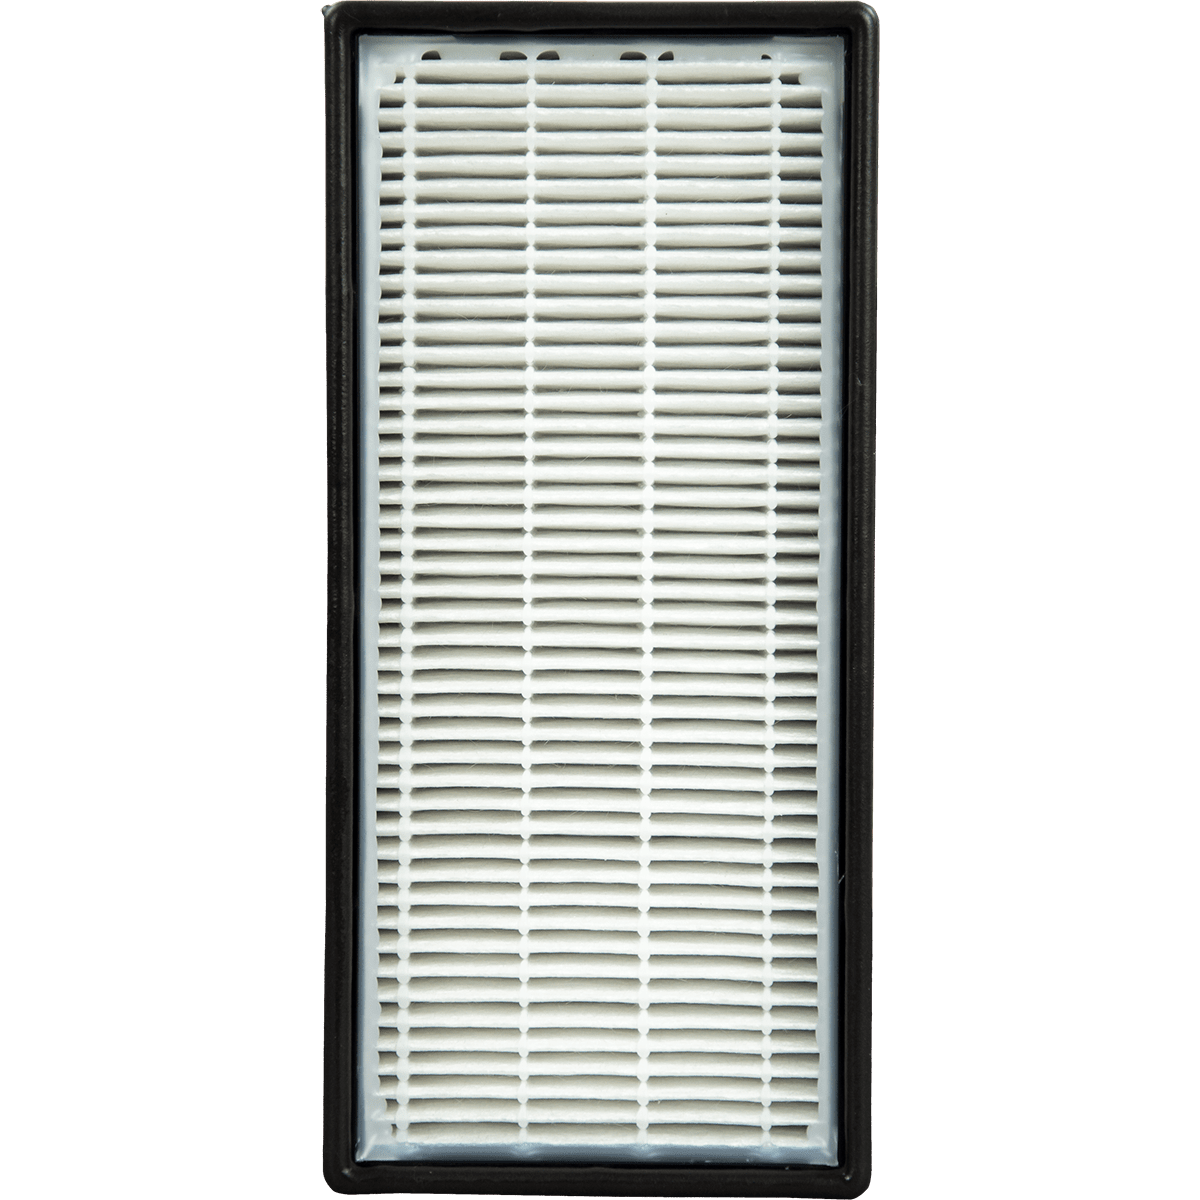 Replacement Filter Comparable to Honeywell HEPA Filter C wh6630